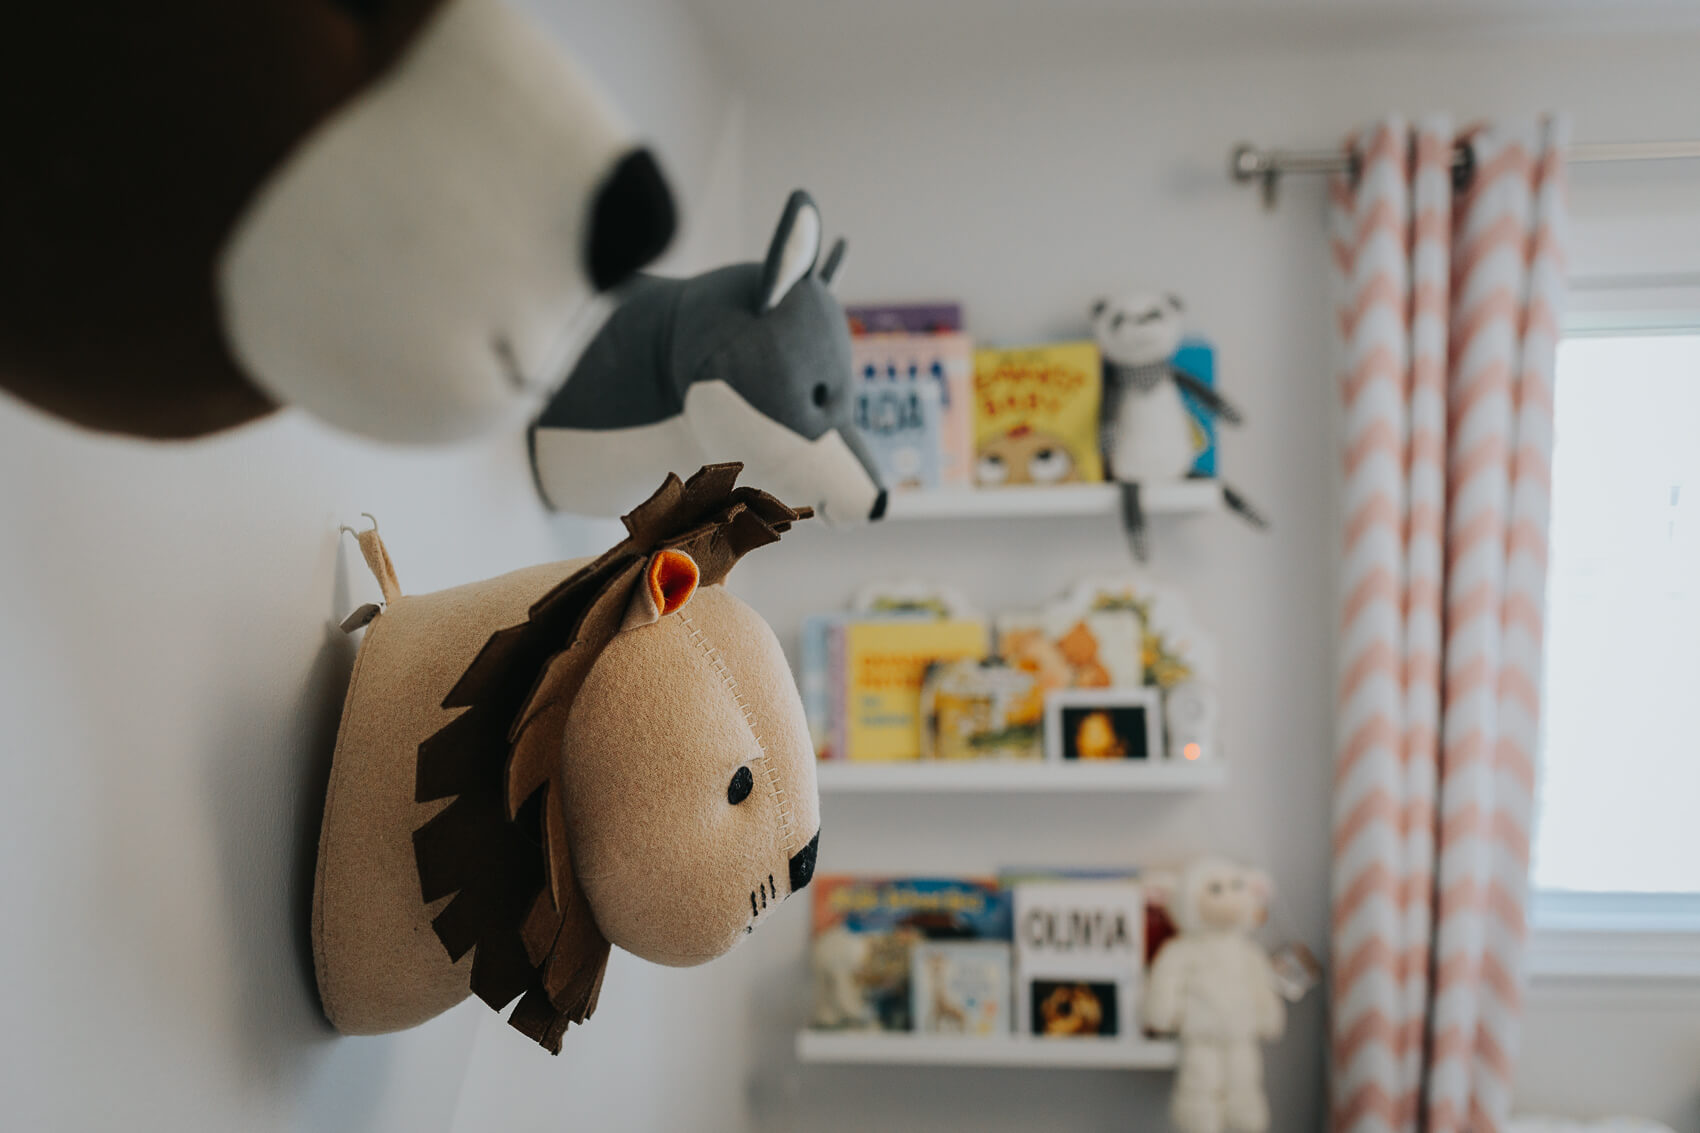 Picture of baby's nursery with animal stuffed toys on the wall.